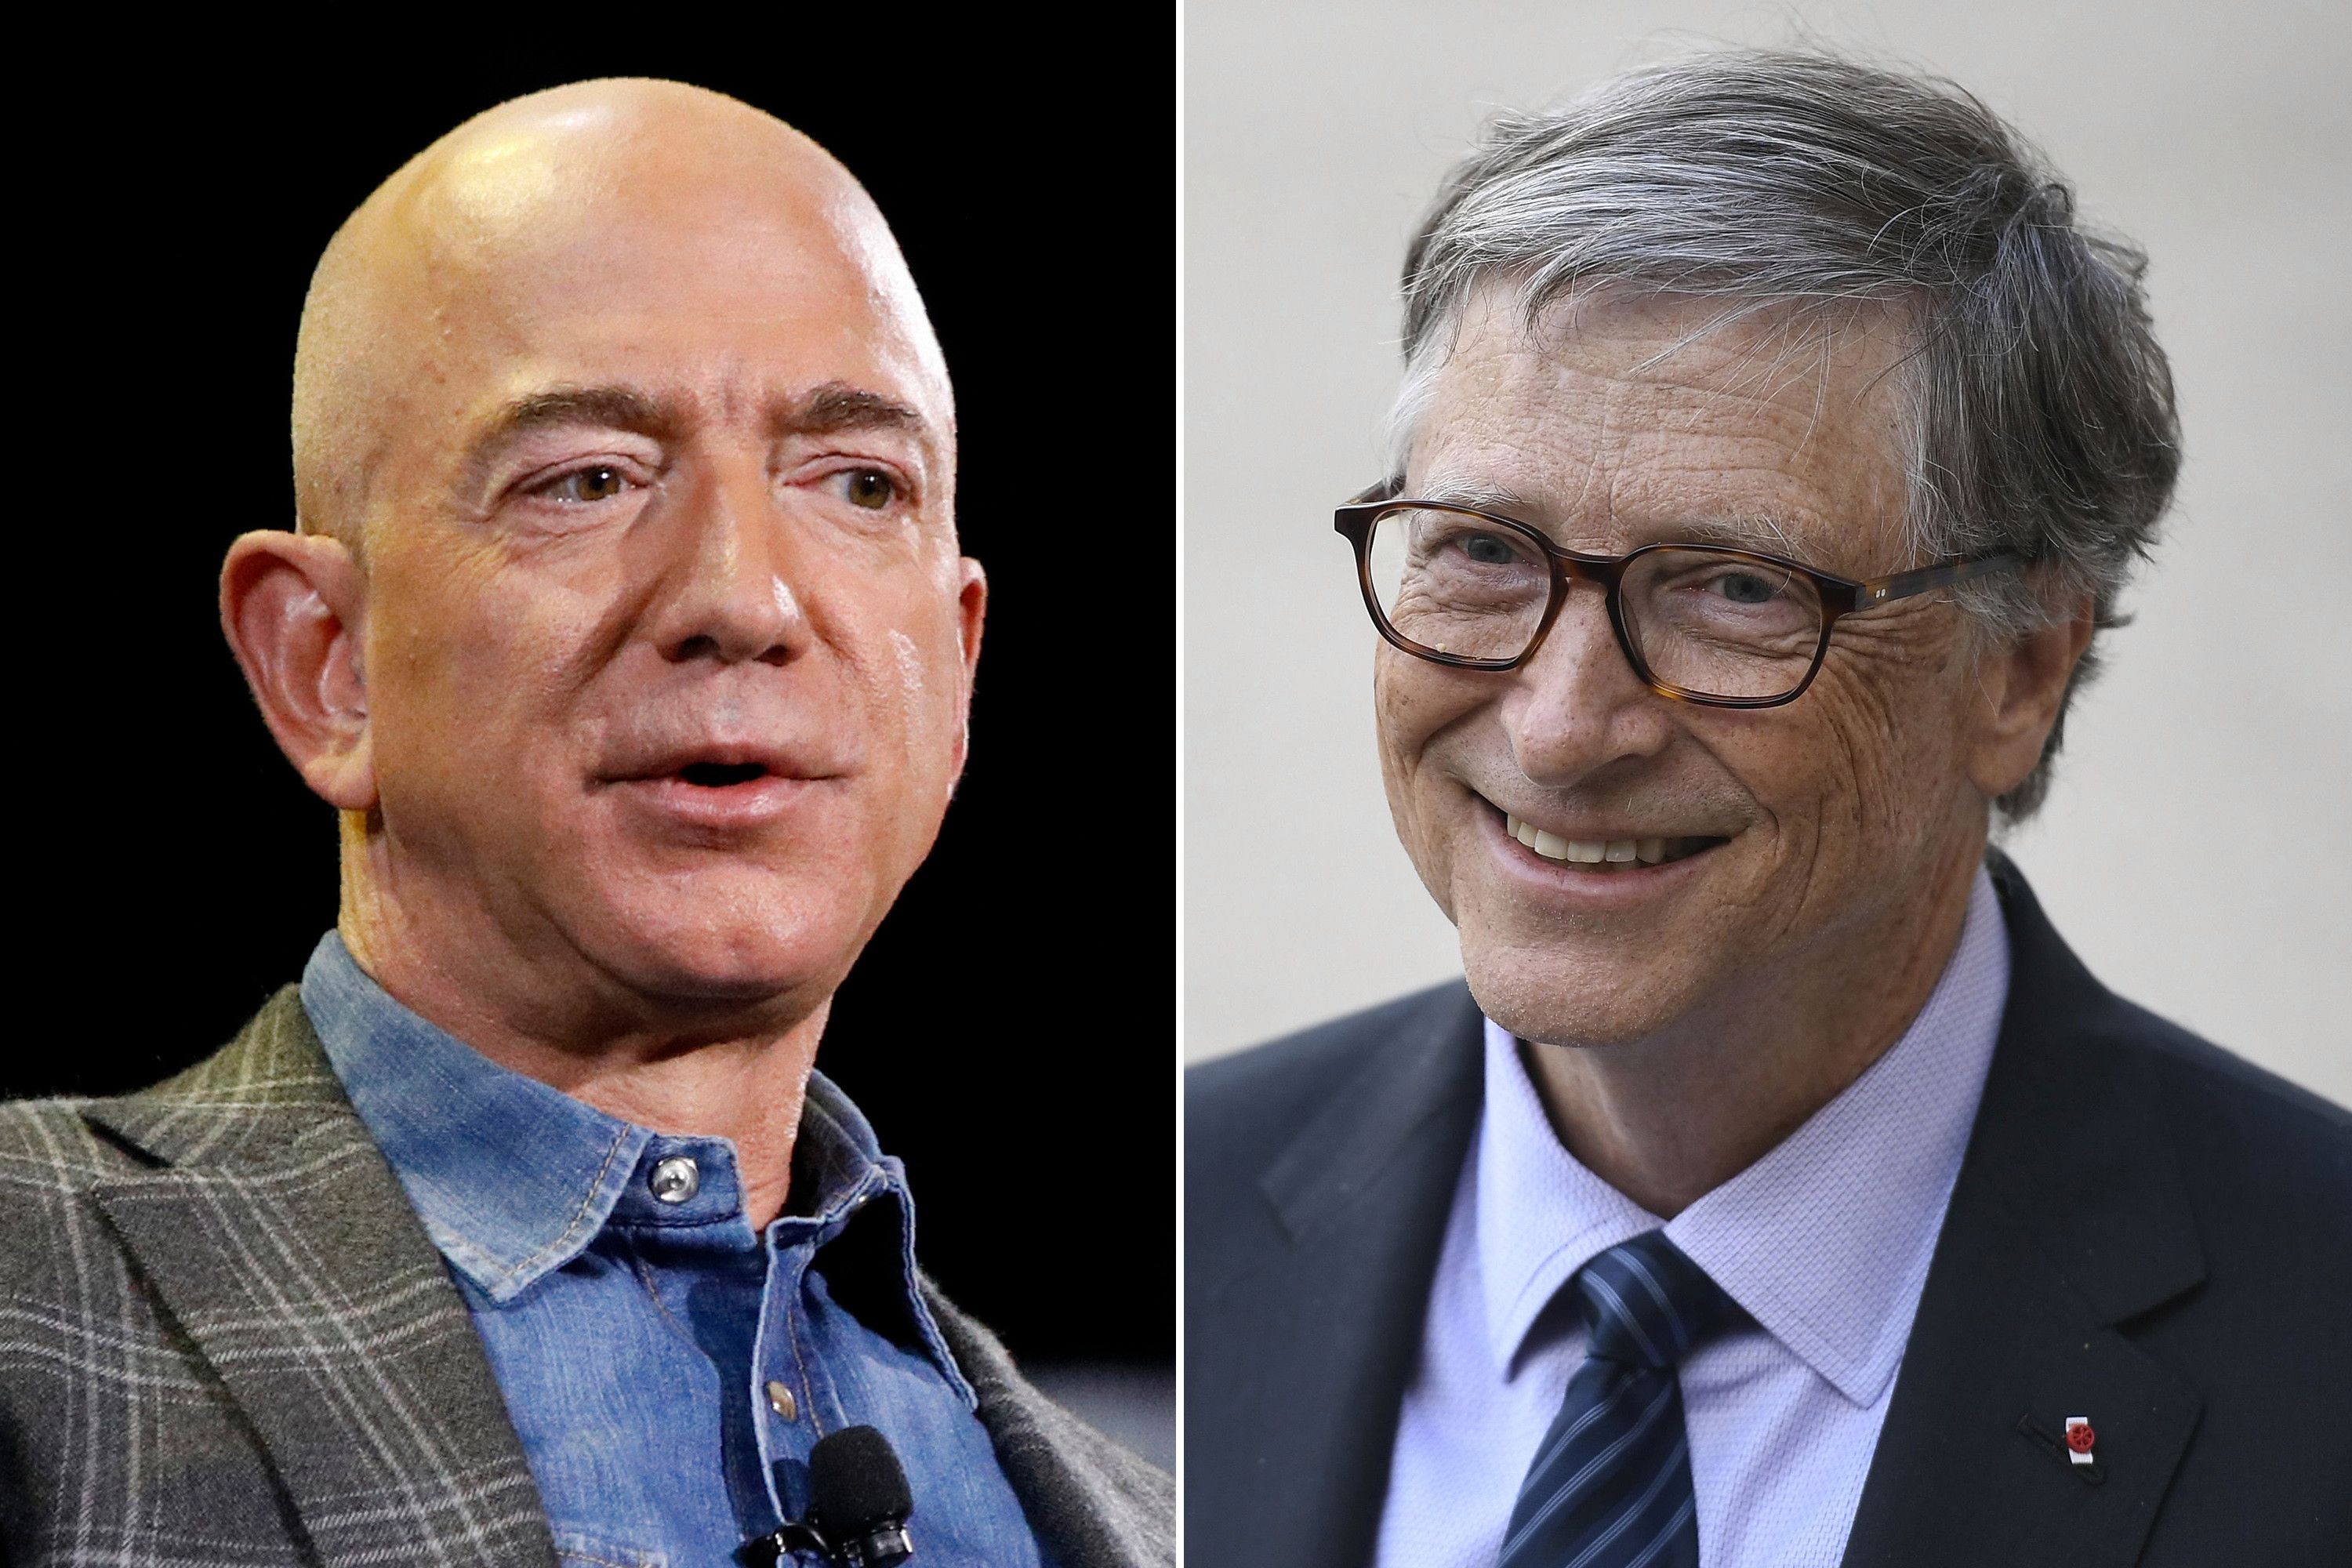 Bill Gates Overtakes Jeff Bezos As The Richest Person In The World At 110 Billion Amazon Owner Jeff Bezos Richest In The World